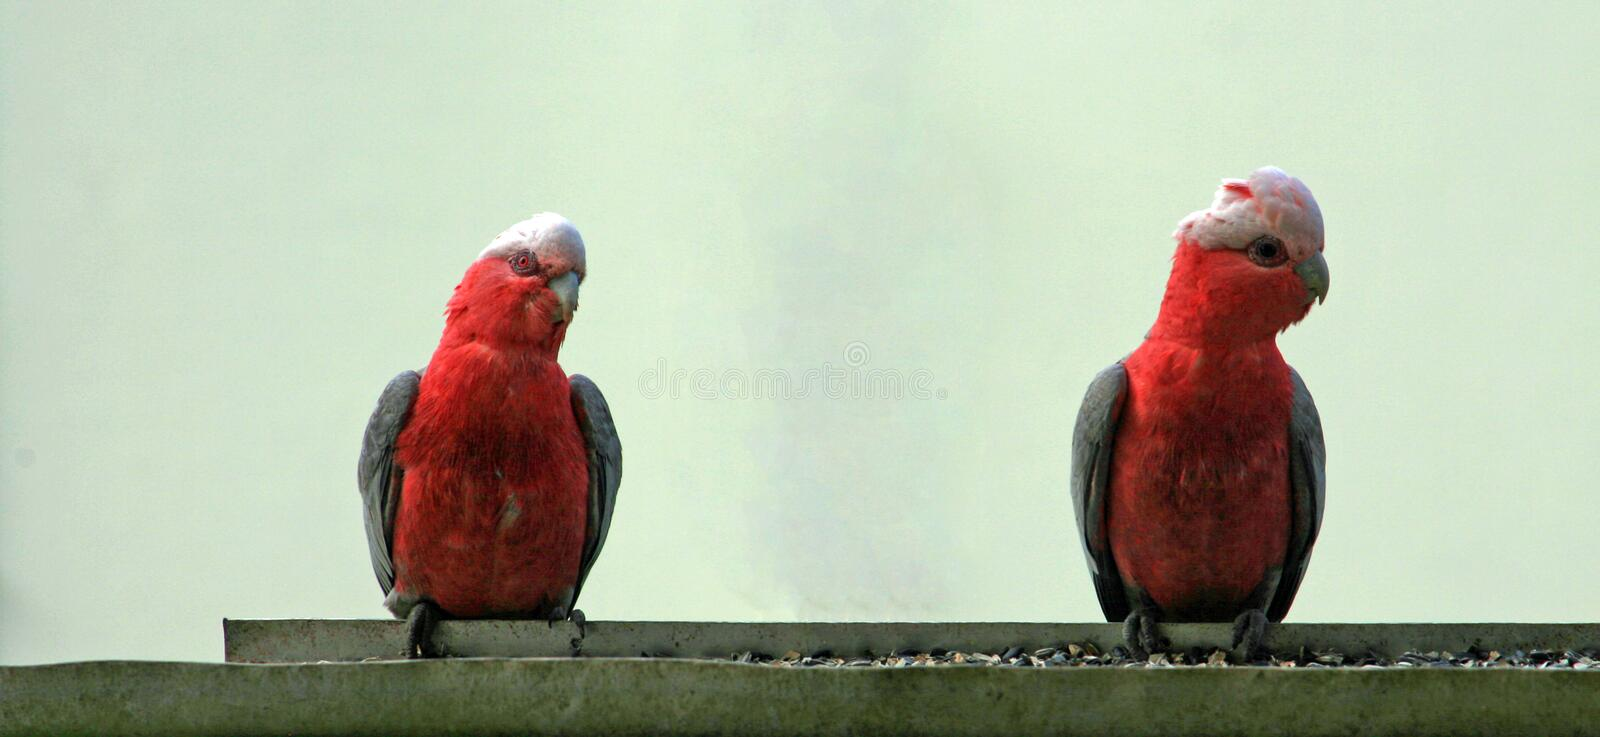 Pink and Gray Gala / Galah Parrots in Drouin Victoria Australia. AUS stock image